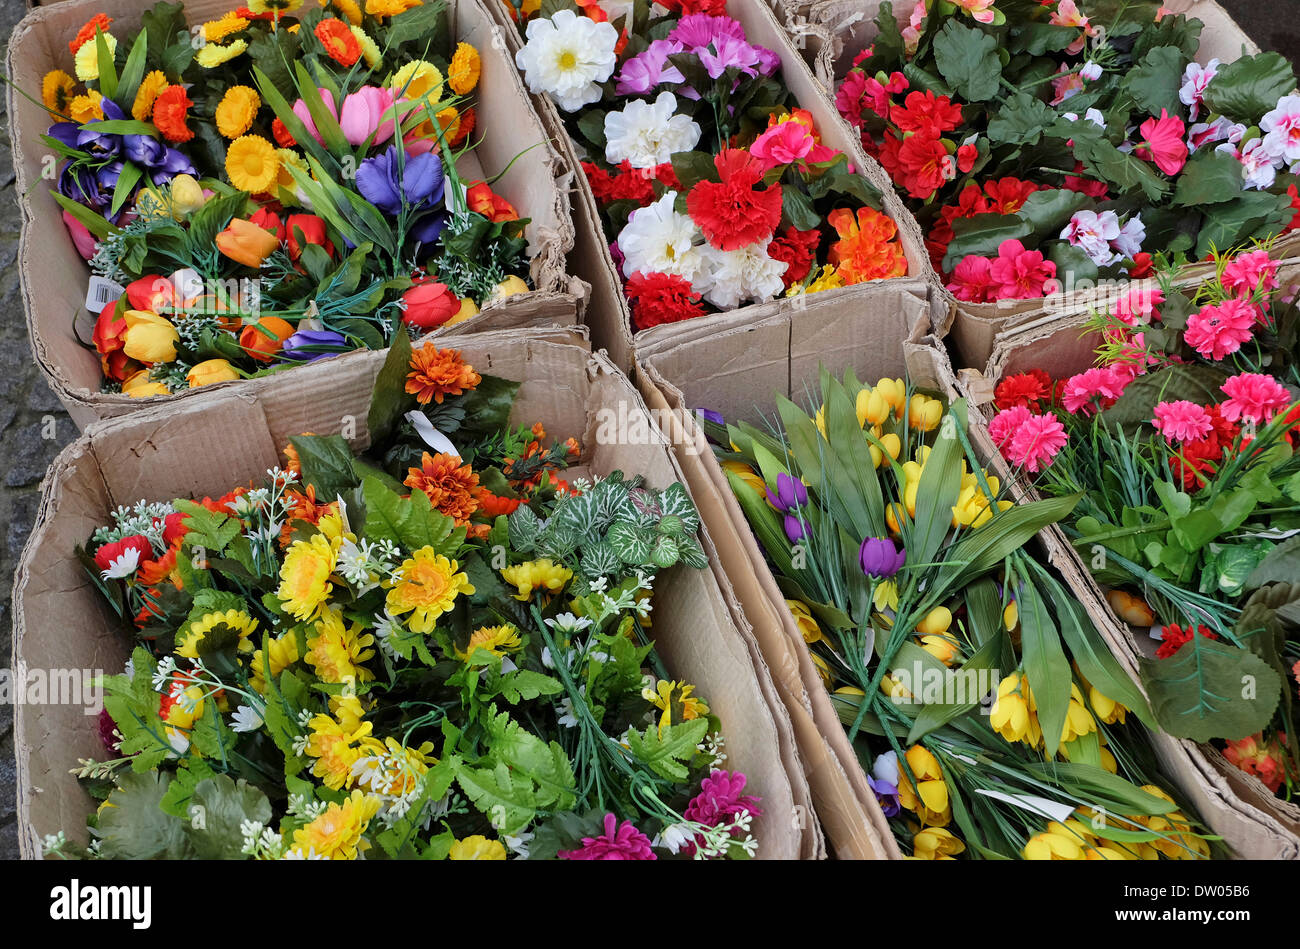 colourful cultivated cut flowers in cardboard boxes - Stock Image